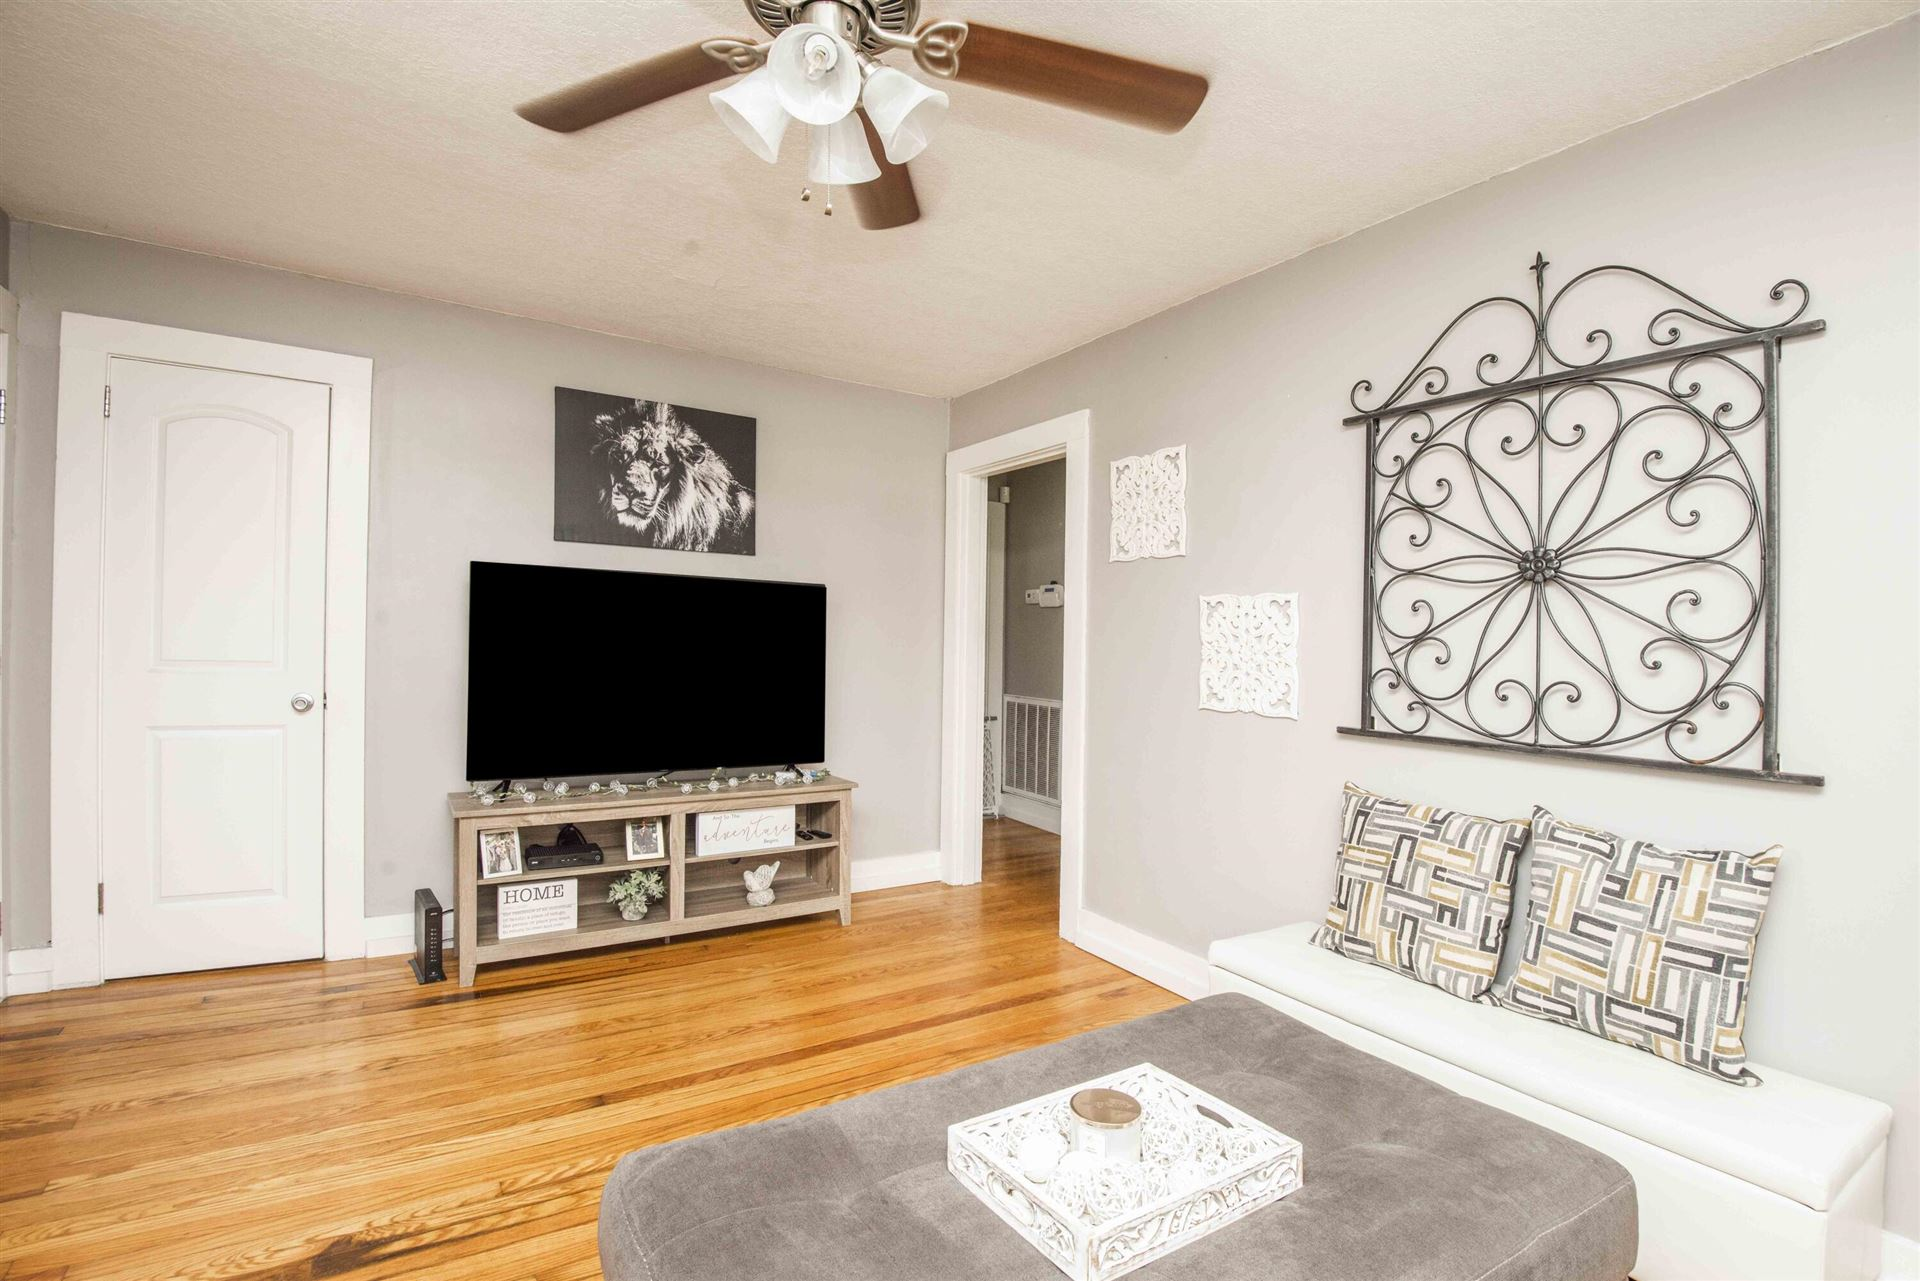 Photo of 2808 Edgewood Ave, Knoxville, TN 37917 (MLS # 1164504)